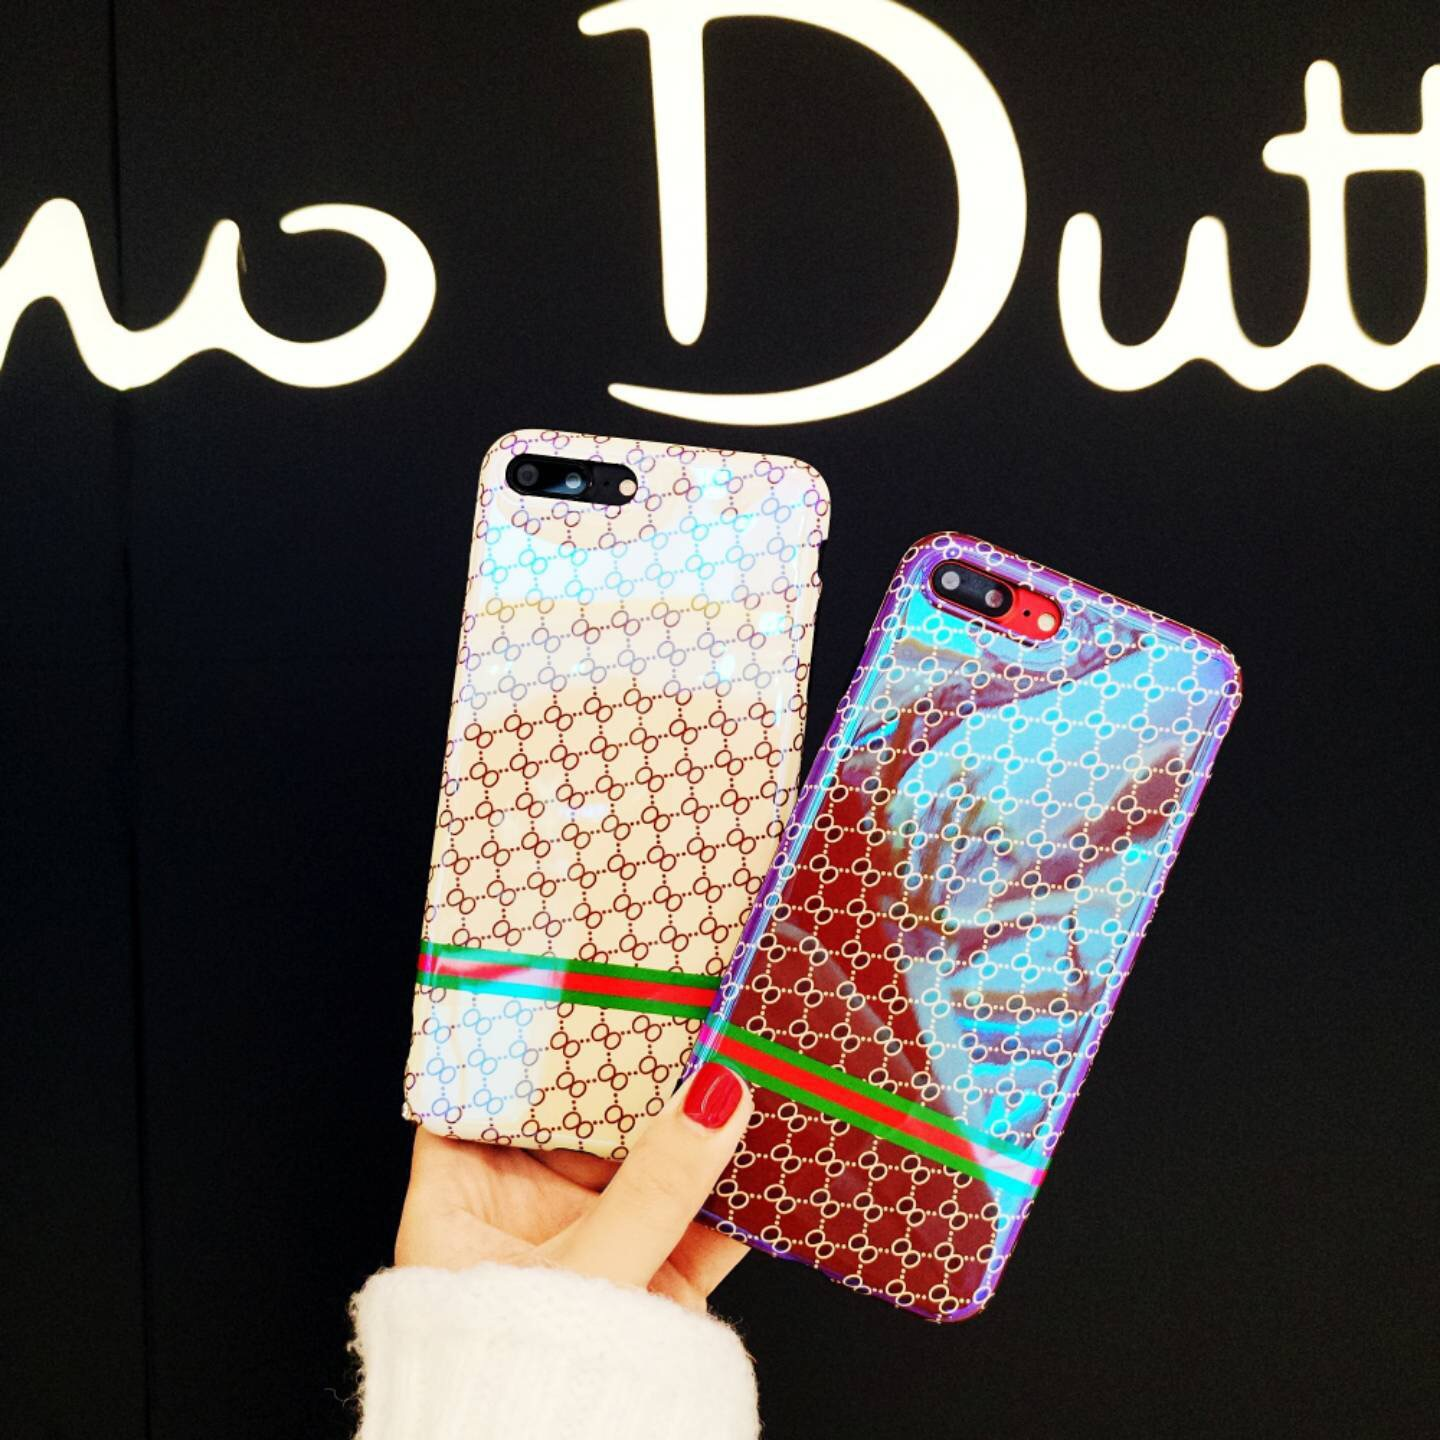 SZYHOME Phone Cases For iPhone 6 6s 7 Plus Vintage Fashion Luxury <font><b>Blu-ray</b></font> TPU Silicon For iPhone 8 Phone Cover Case Capa Coque